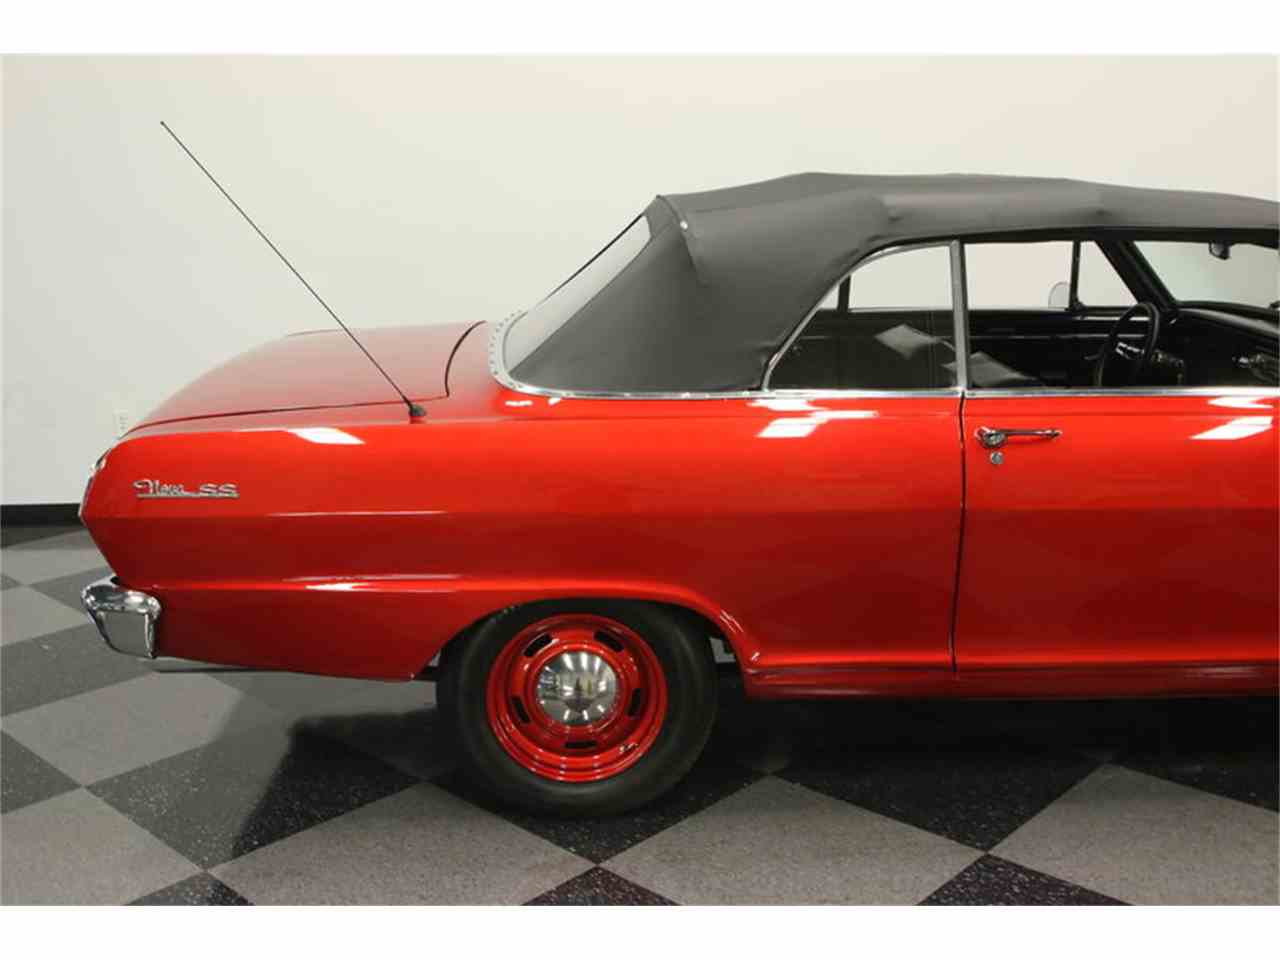 Chevy Dealers Tampa >> 1963 Chevrolet Nova Chevy II Convertible for Sale | ClassicCars.com | CC-1035454